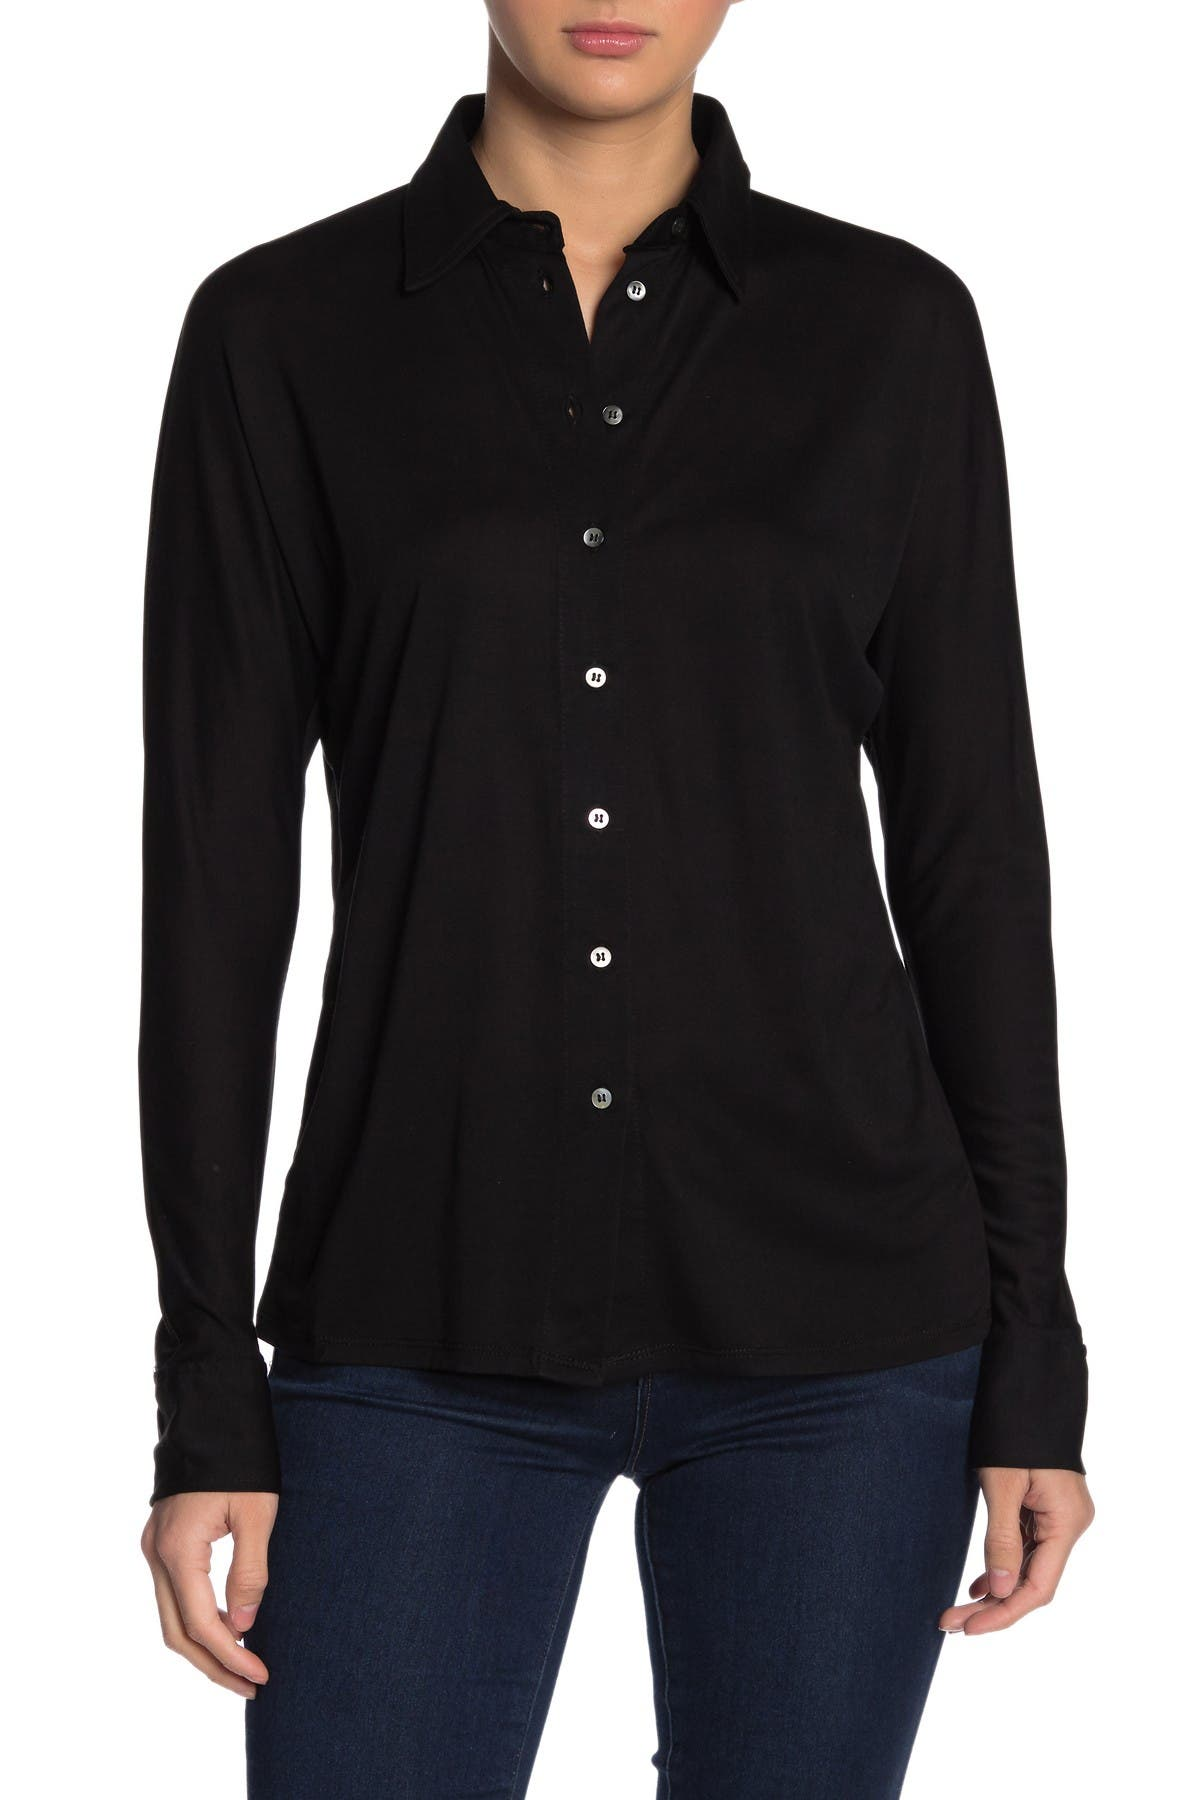 Image of Dress Forum Soft Button Front Shirt